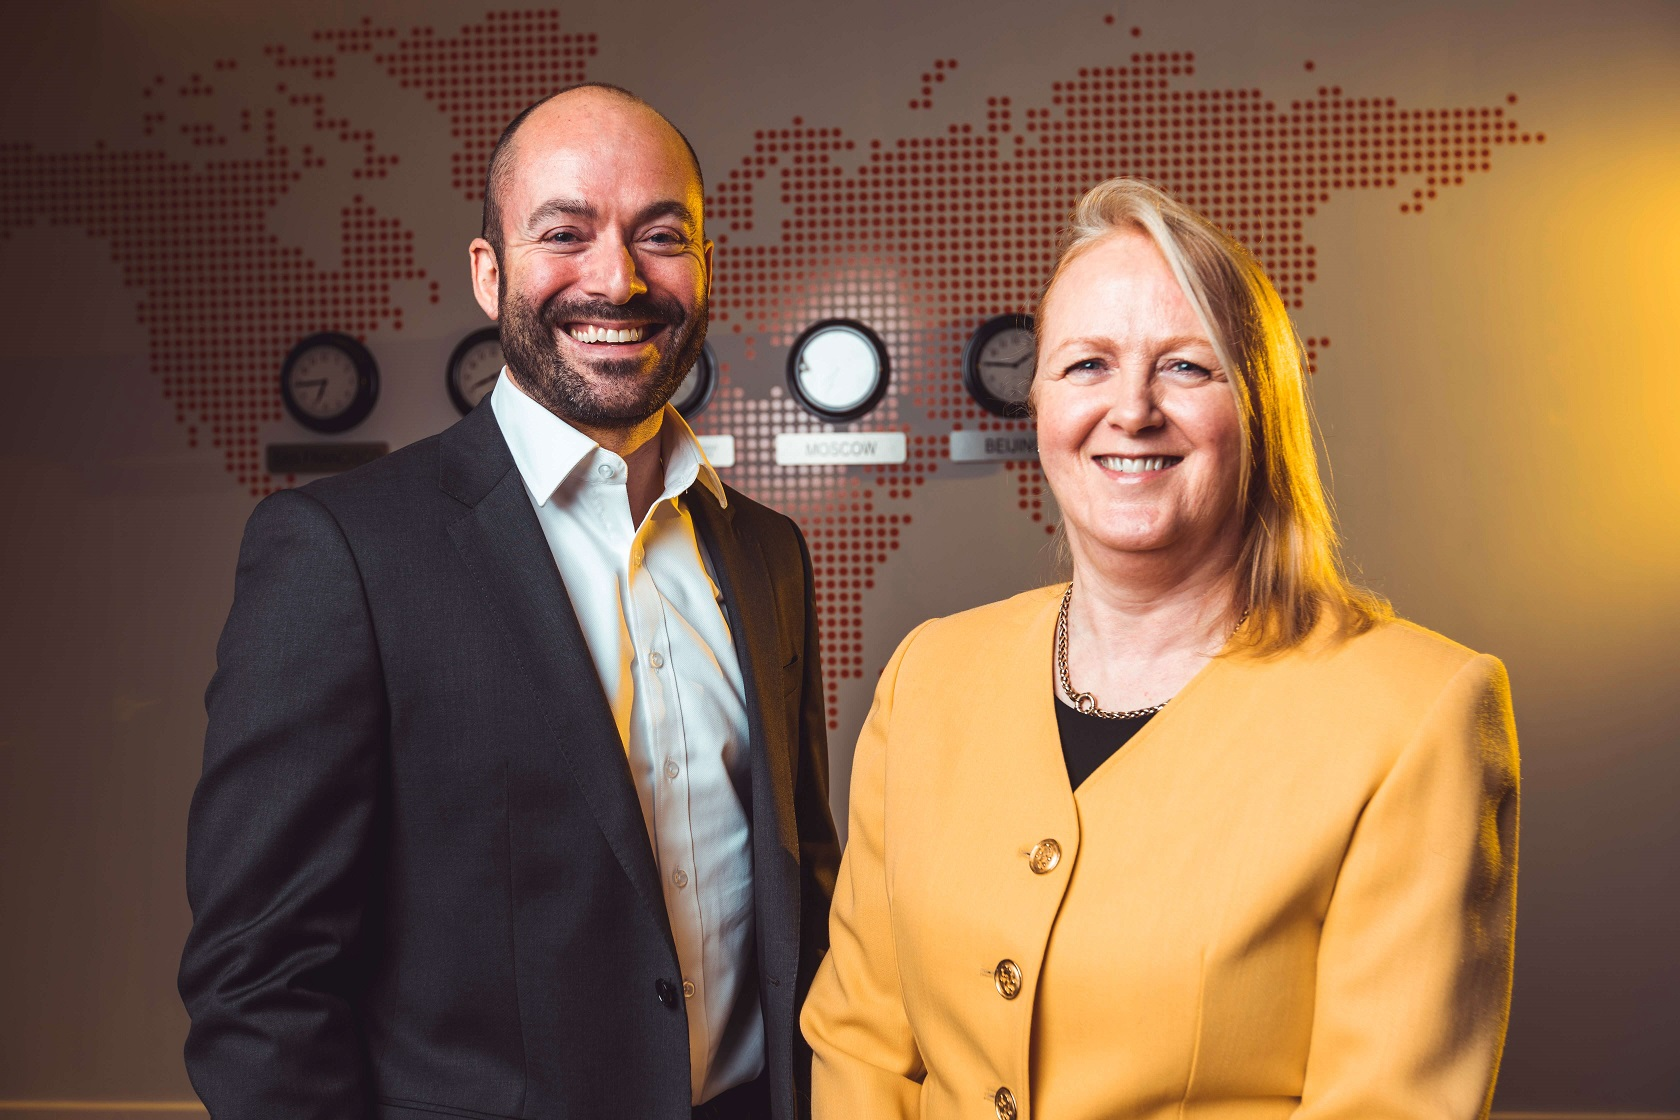 Highlighting IRP Commerce's inclusion in the Fast 50 for the seventh time are Caroline Greer, IRP Commerce Finance Director and Peter Allen, Deloitte Financial Advisory Partner